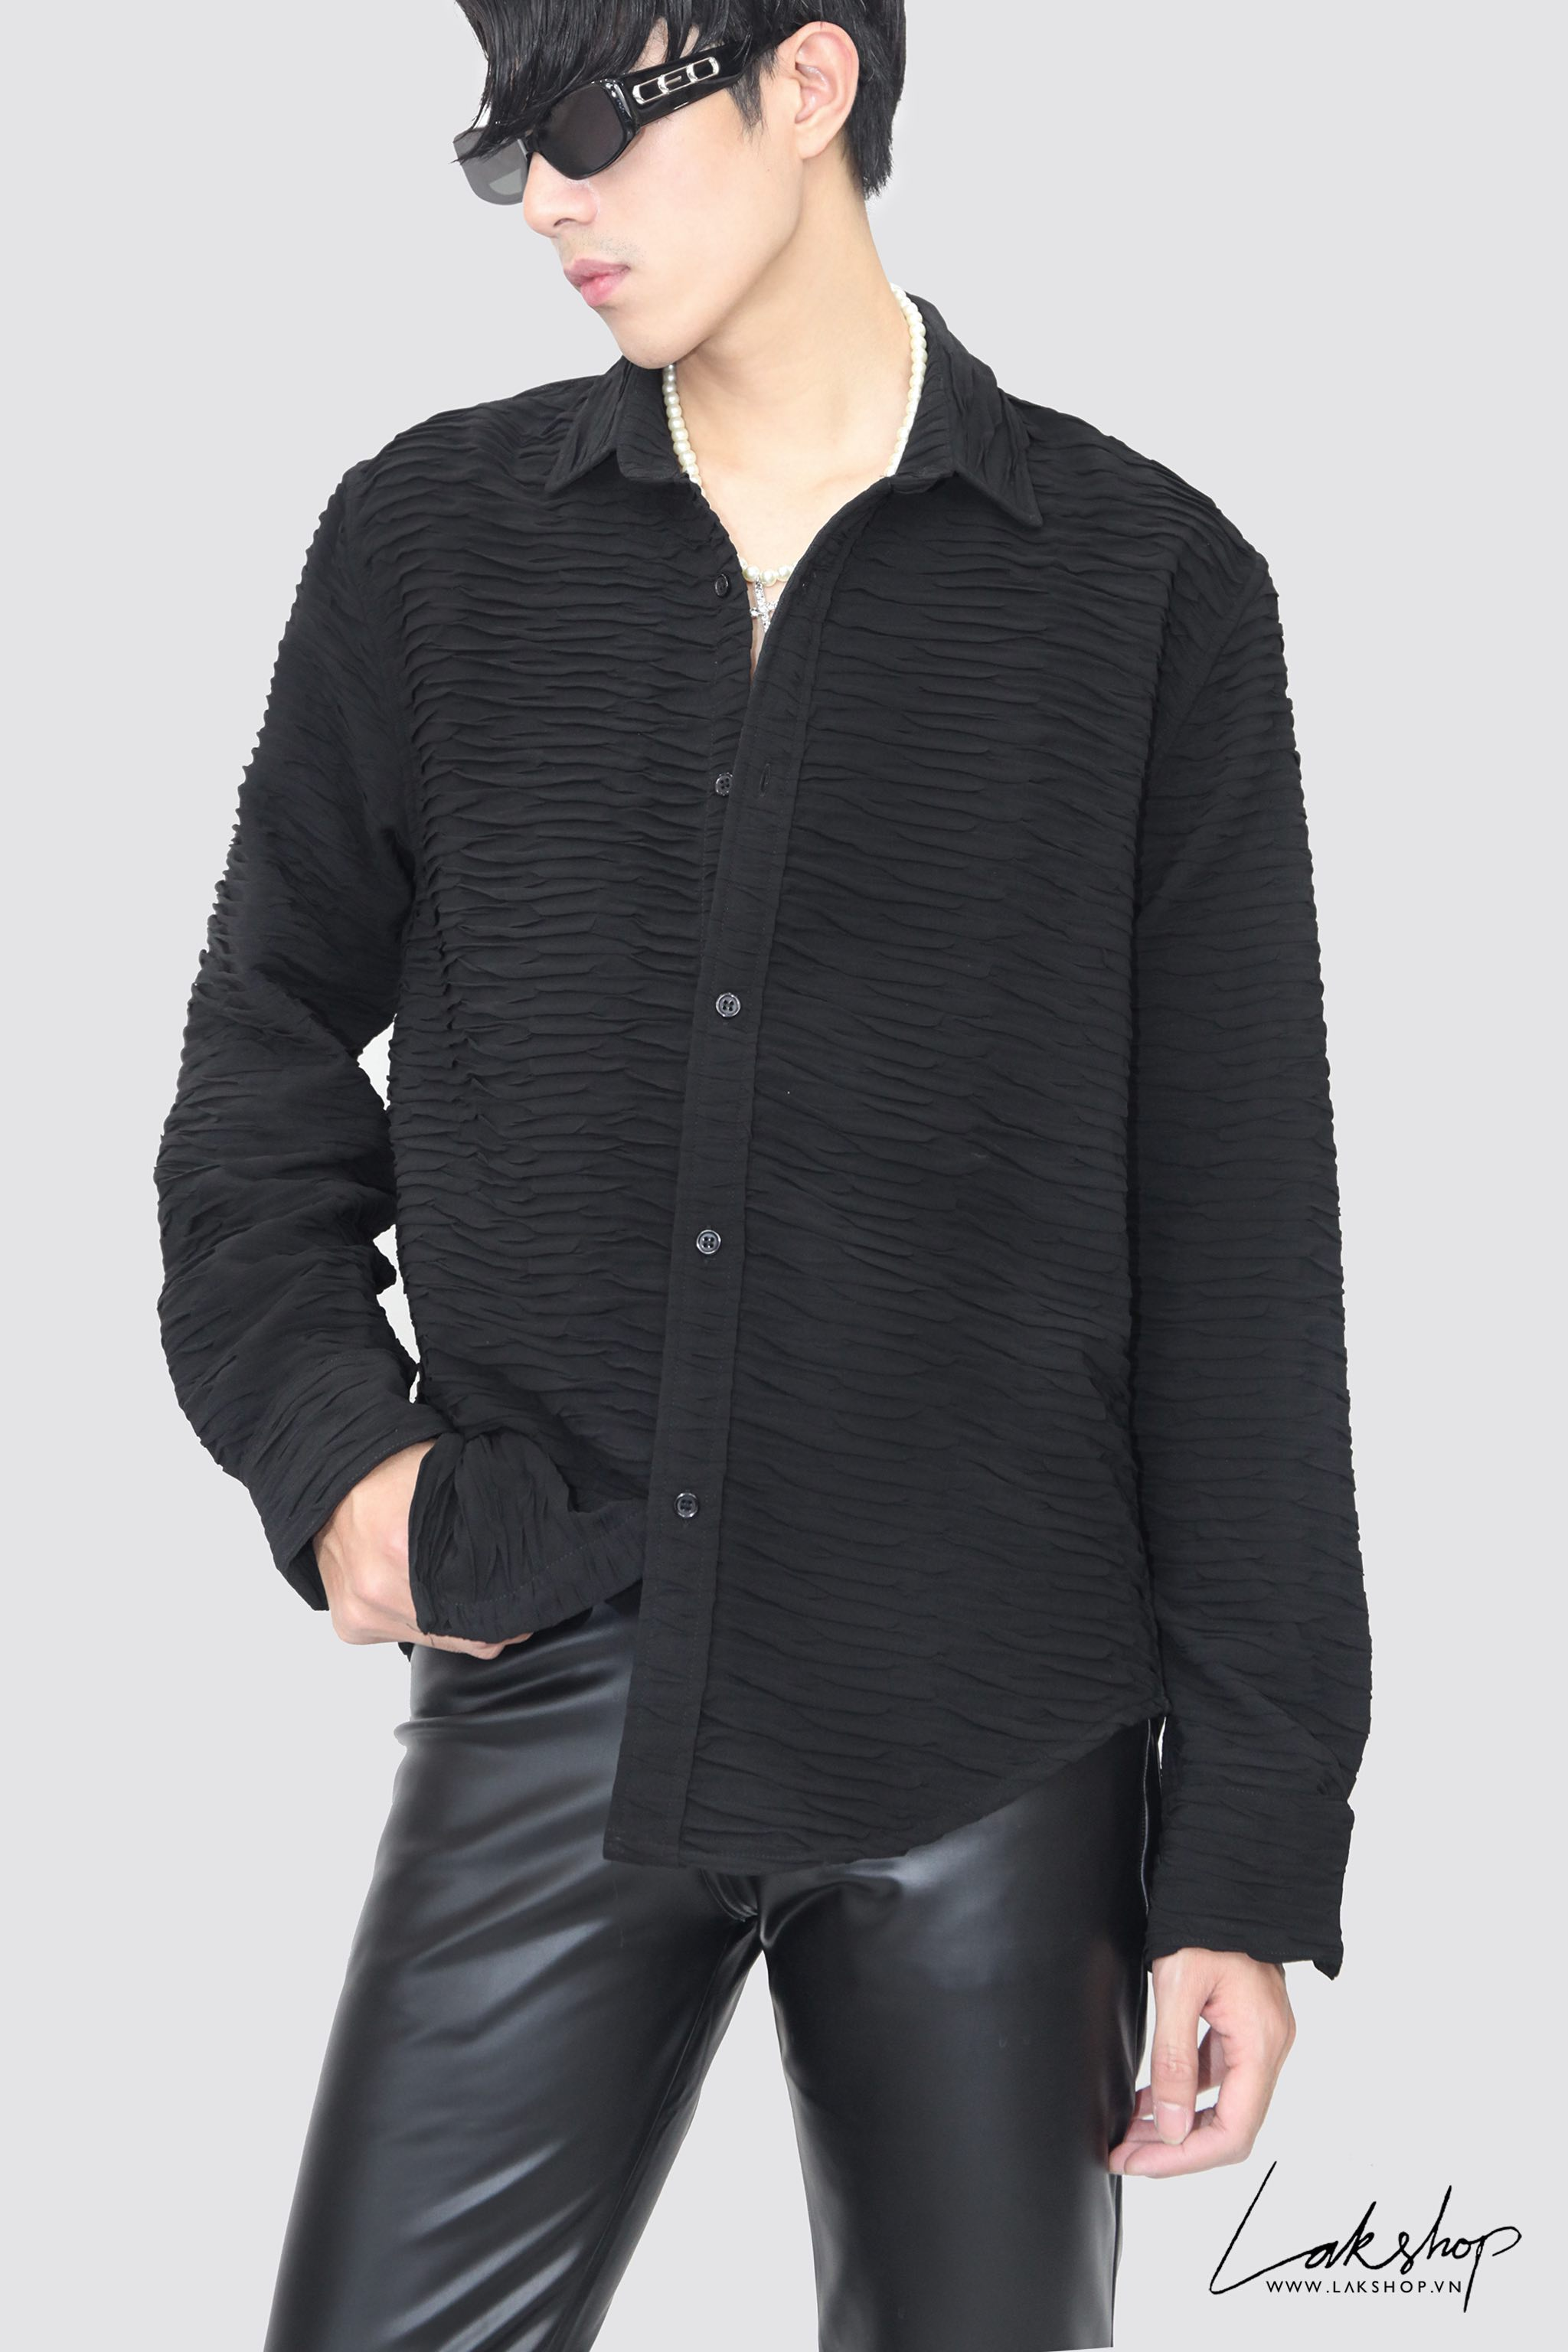 Lak Studios Pleated Wrinkled Black Shirt (Limited Editon)